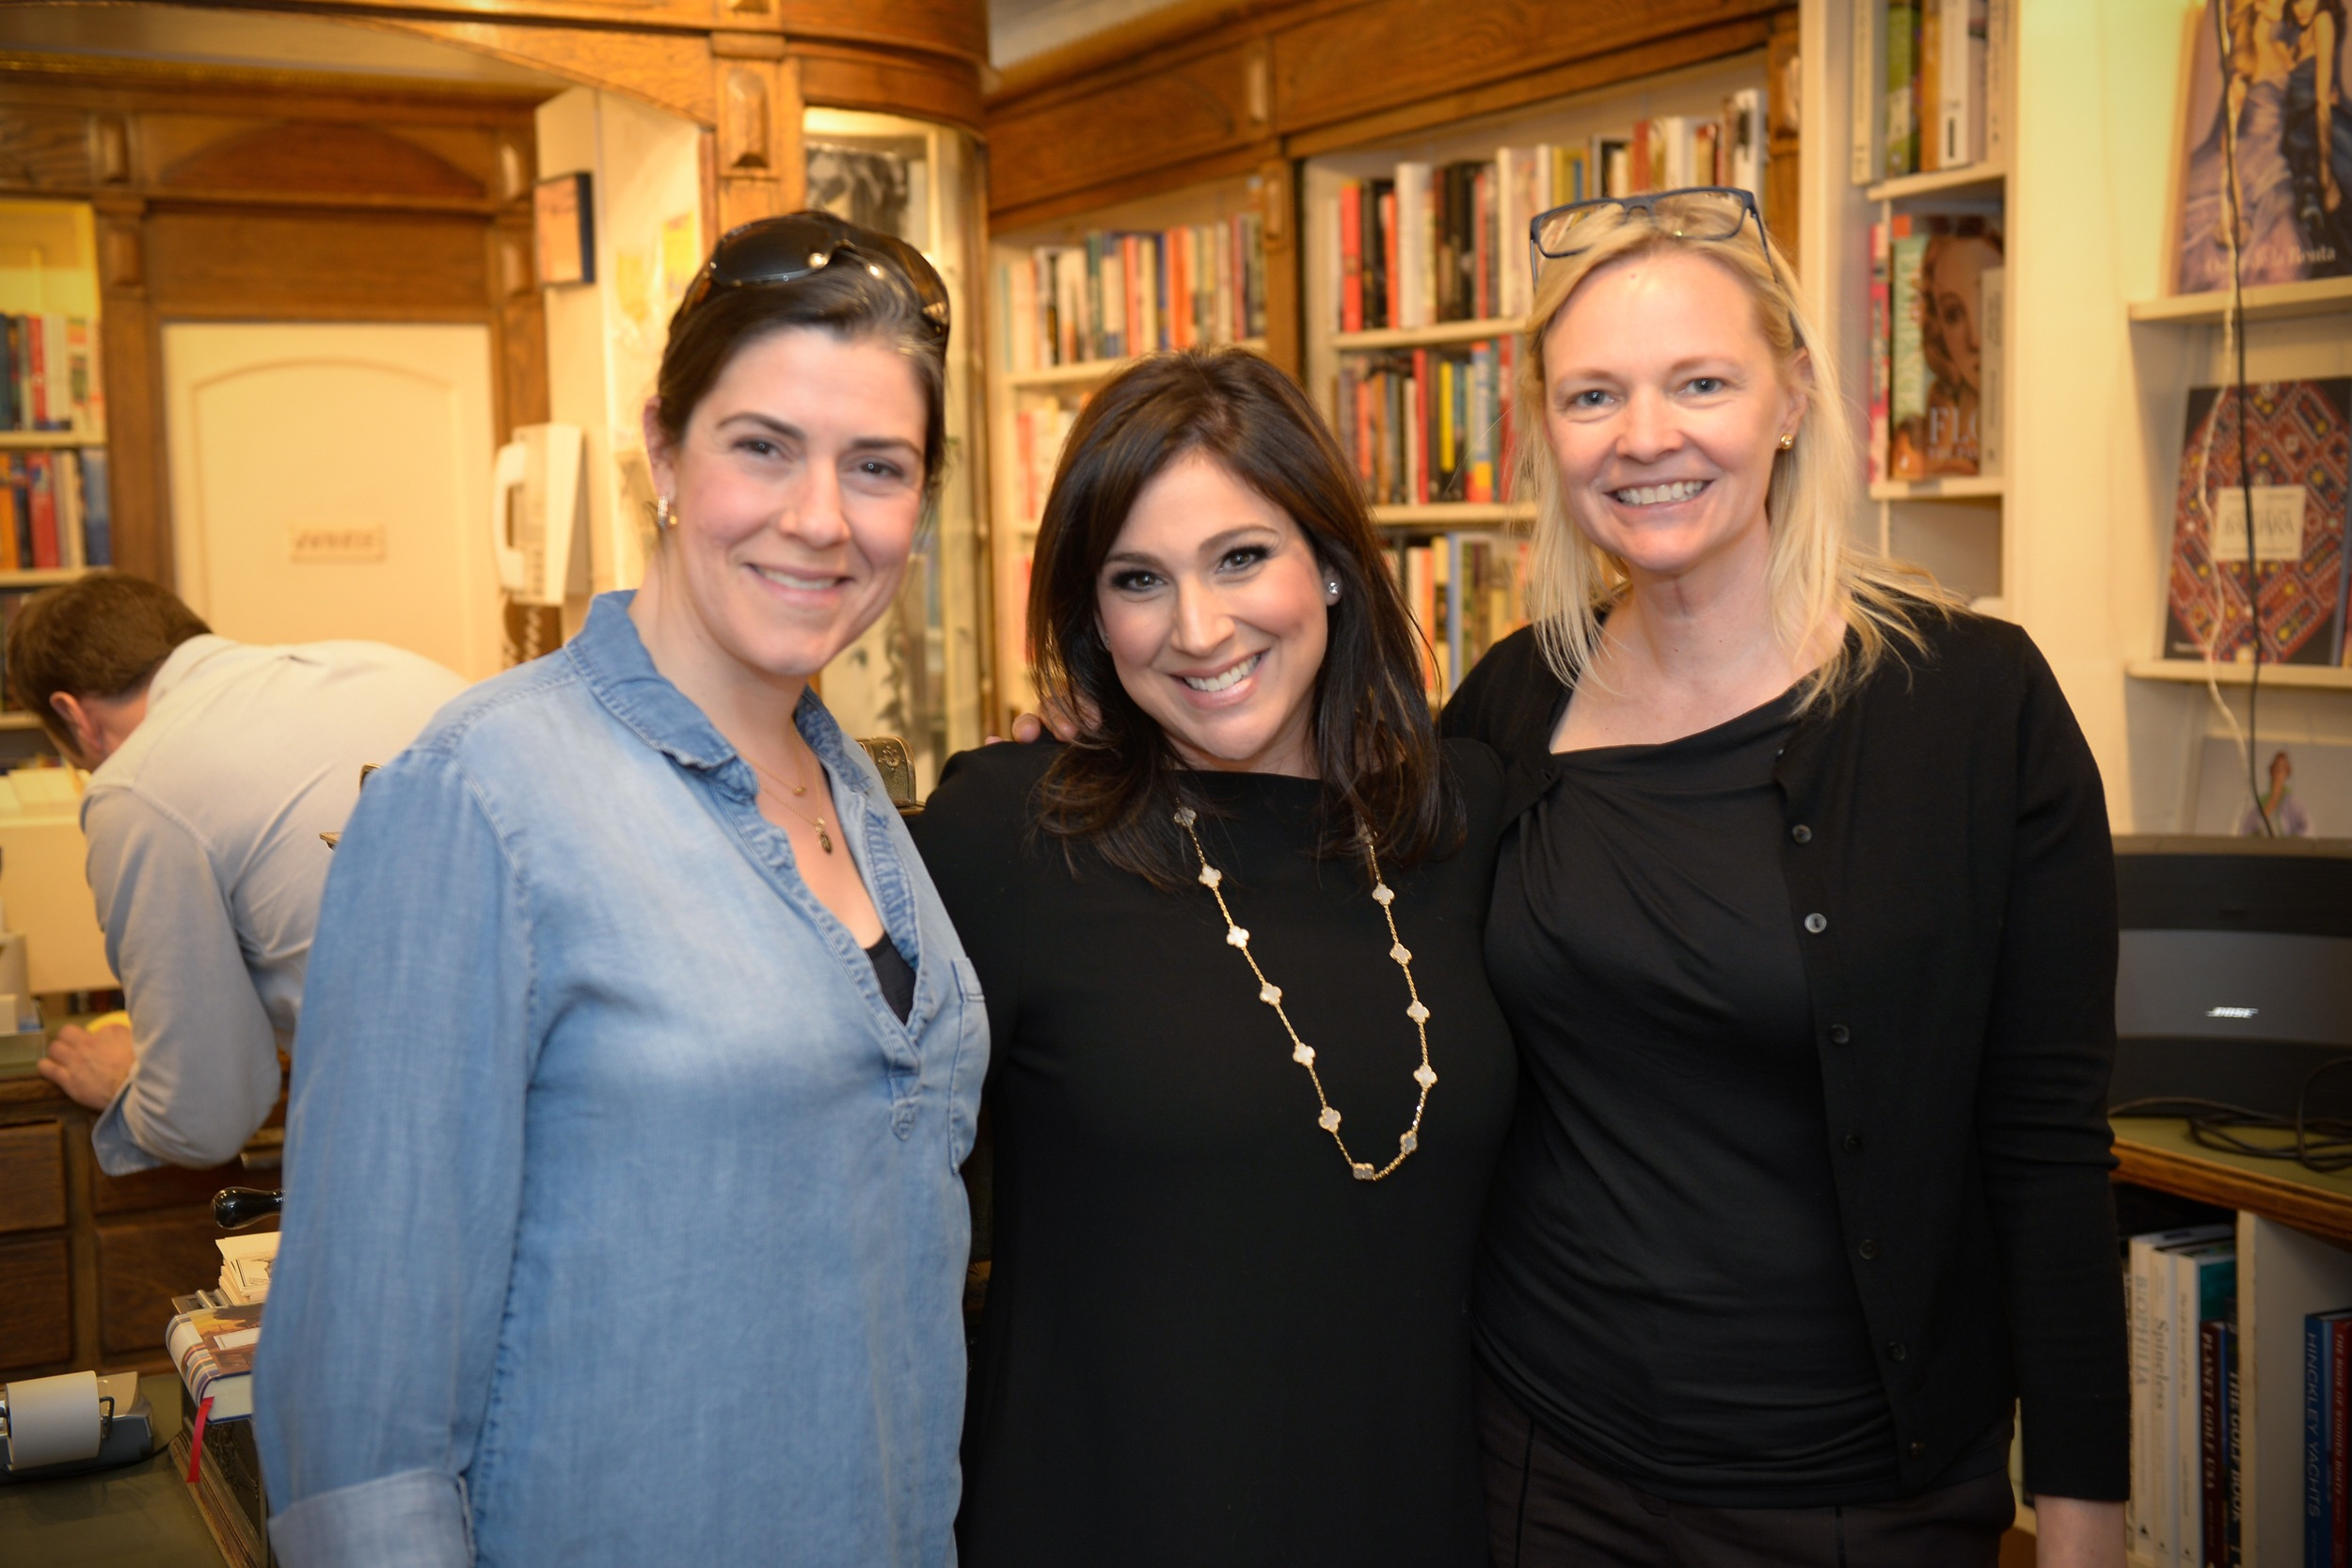 With editor Kendra Harpster and author Amy Scheibe